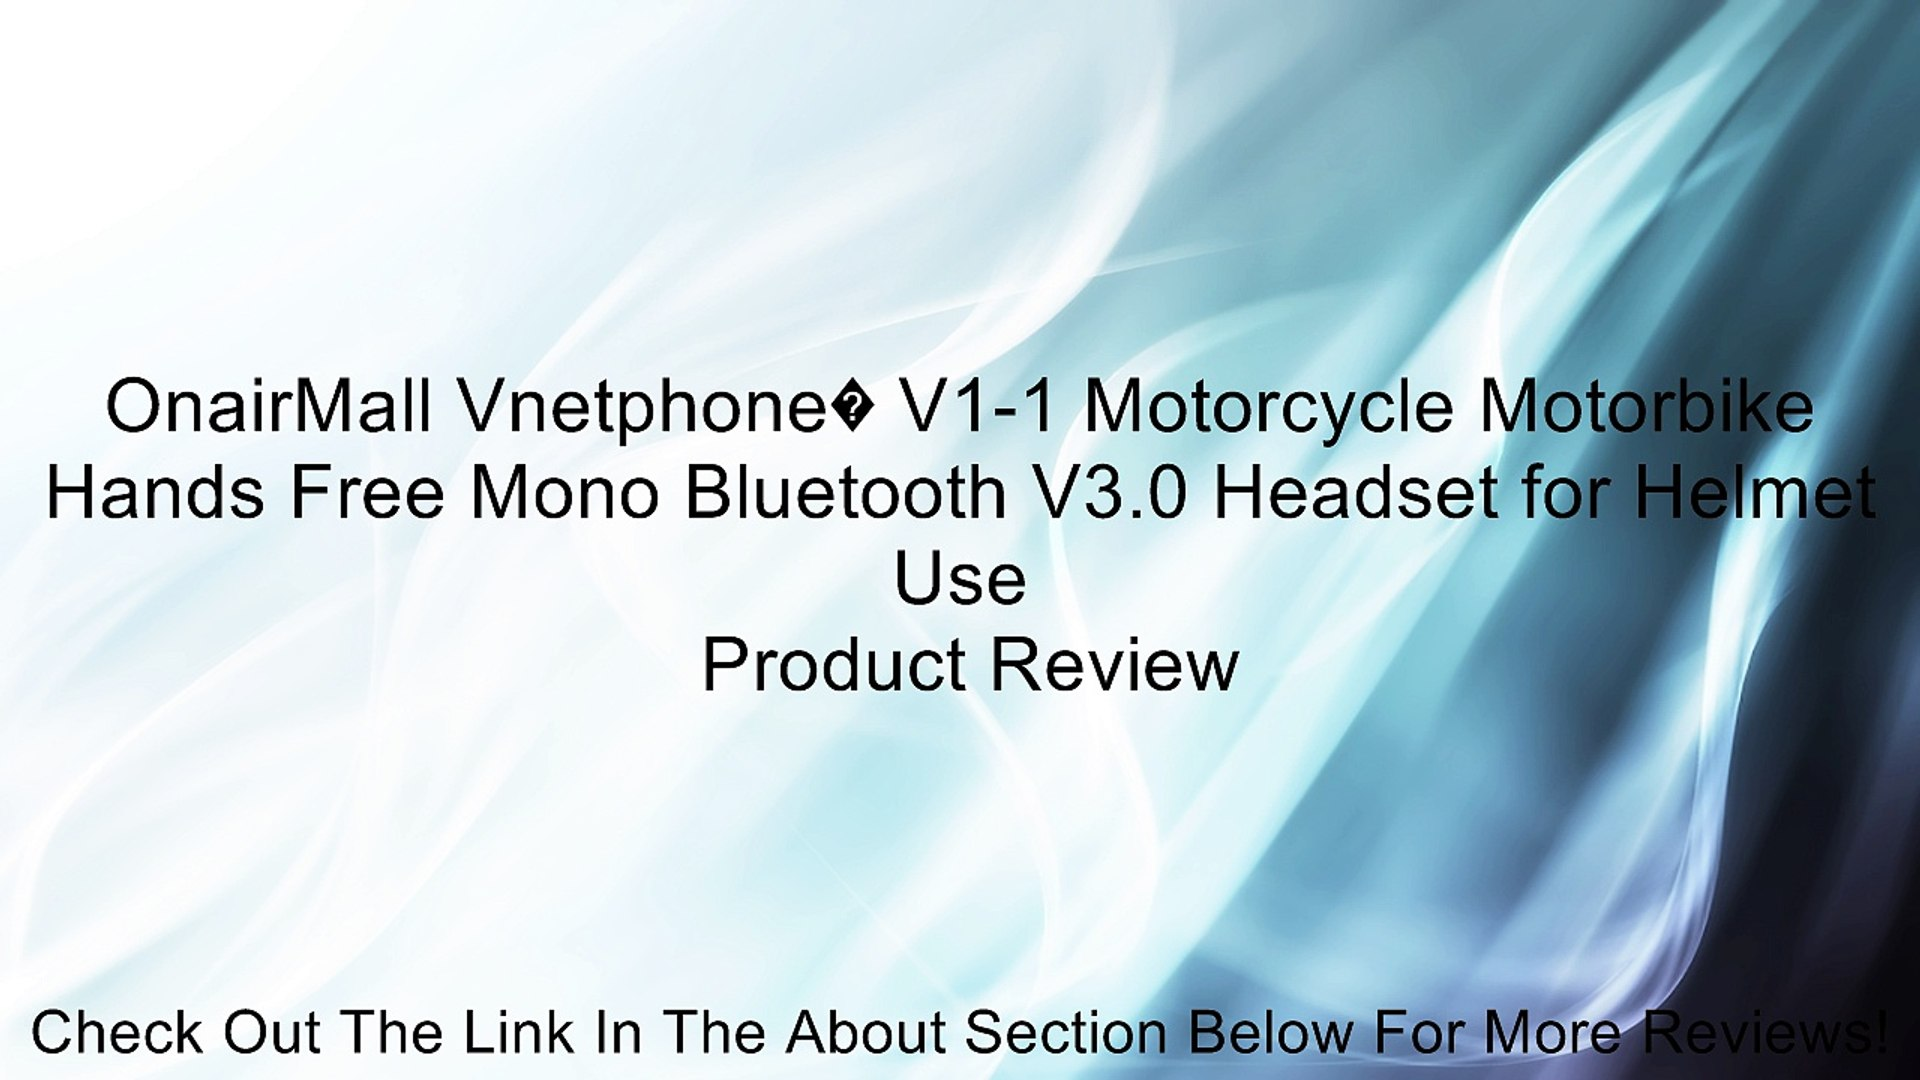 OnairMall Vnetphone V1-1 Motorcycle Motorbike Hands Free Mono Bluetooth  V3 0 Headset for Helmet Use Review